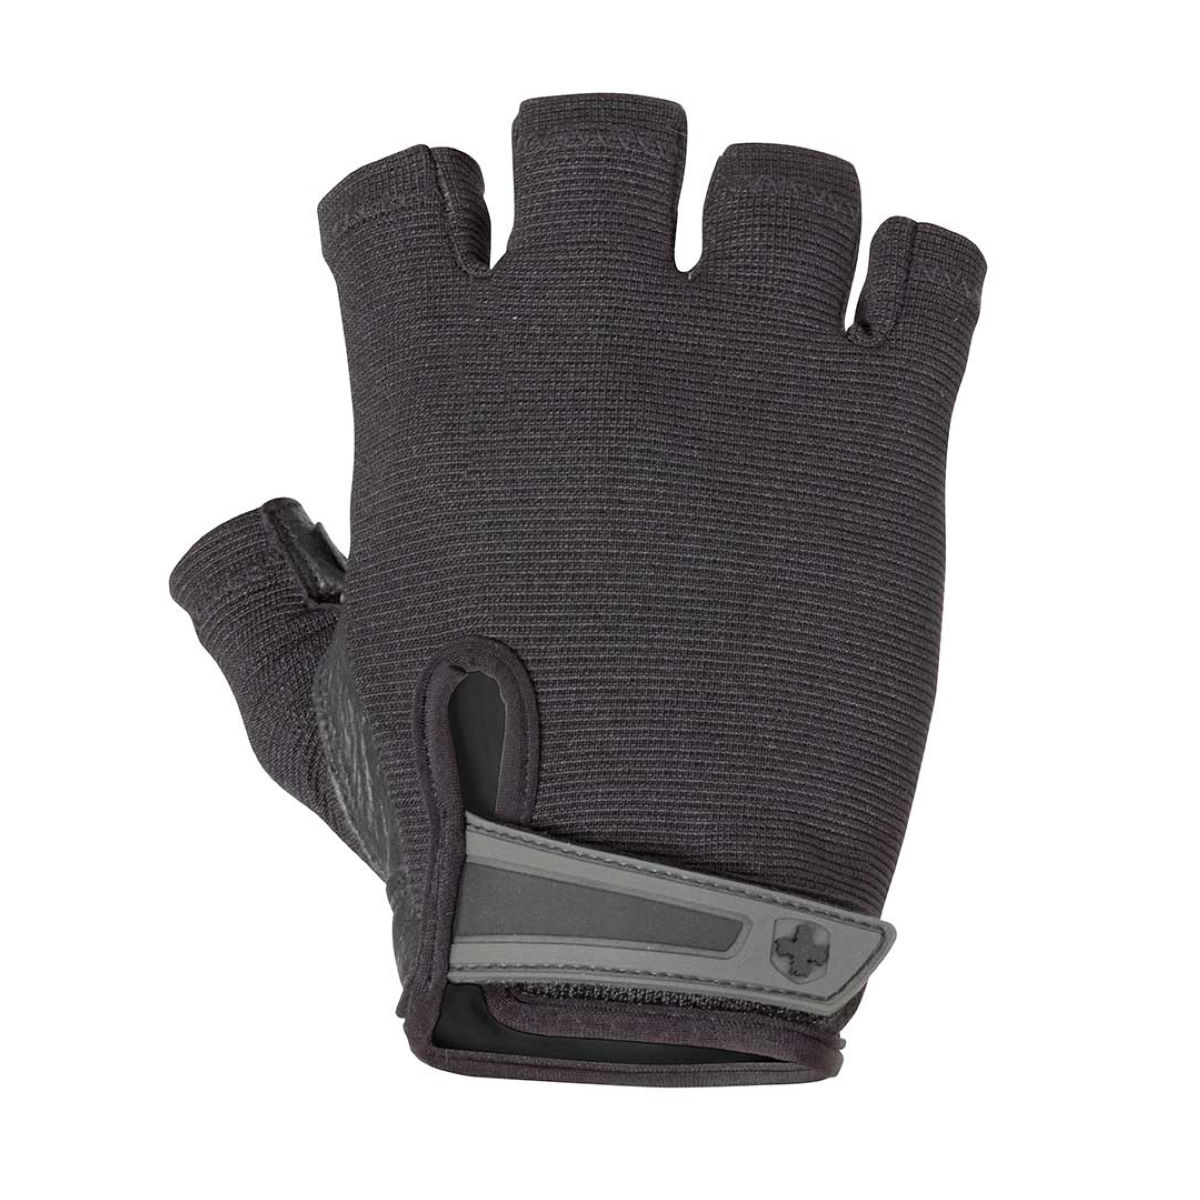 Harbinger Power Gloves - Guantes